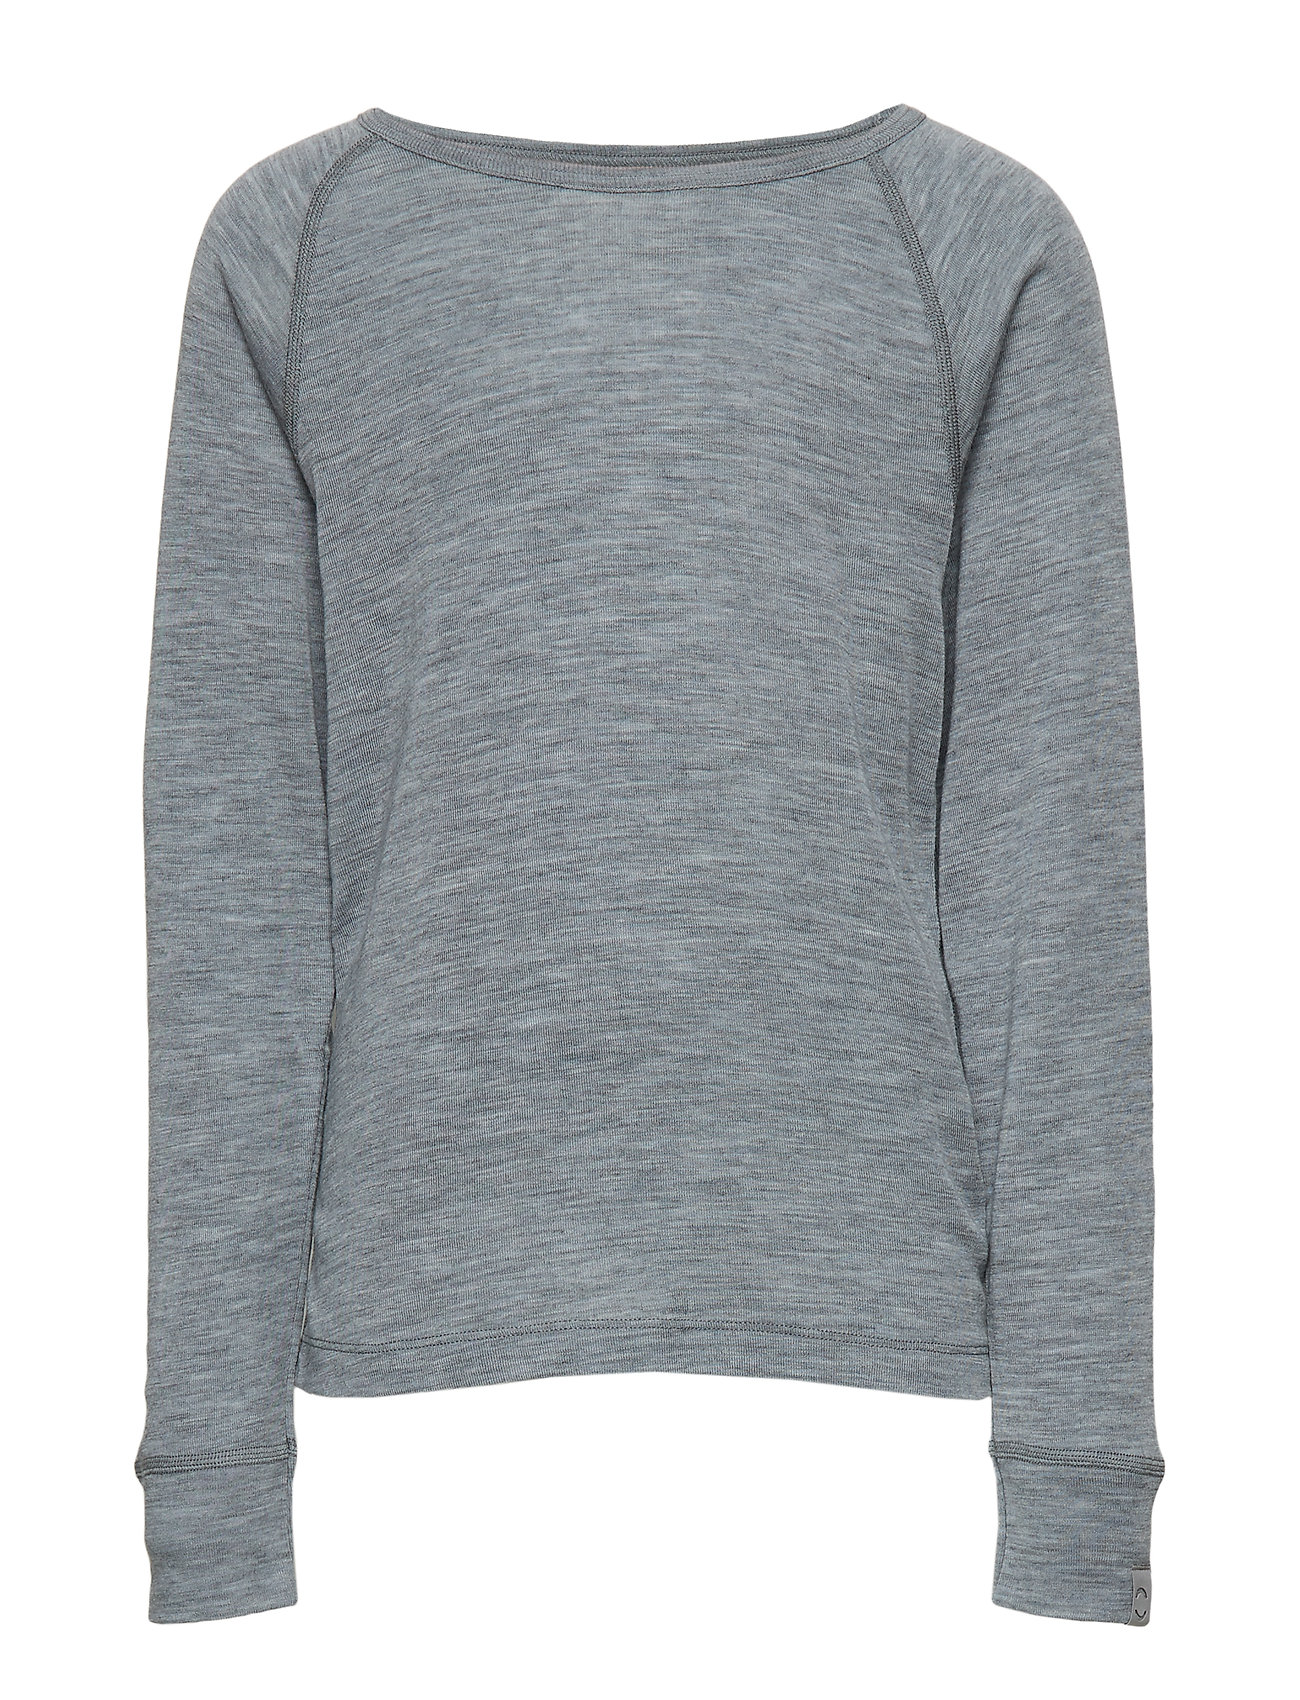 Image of Wool Ls Top Langærmet T-shirt Grå Mikk-Line (3067539501)